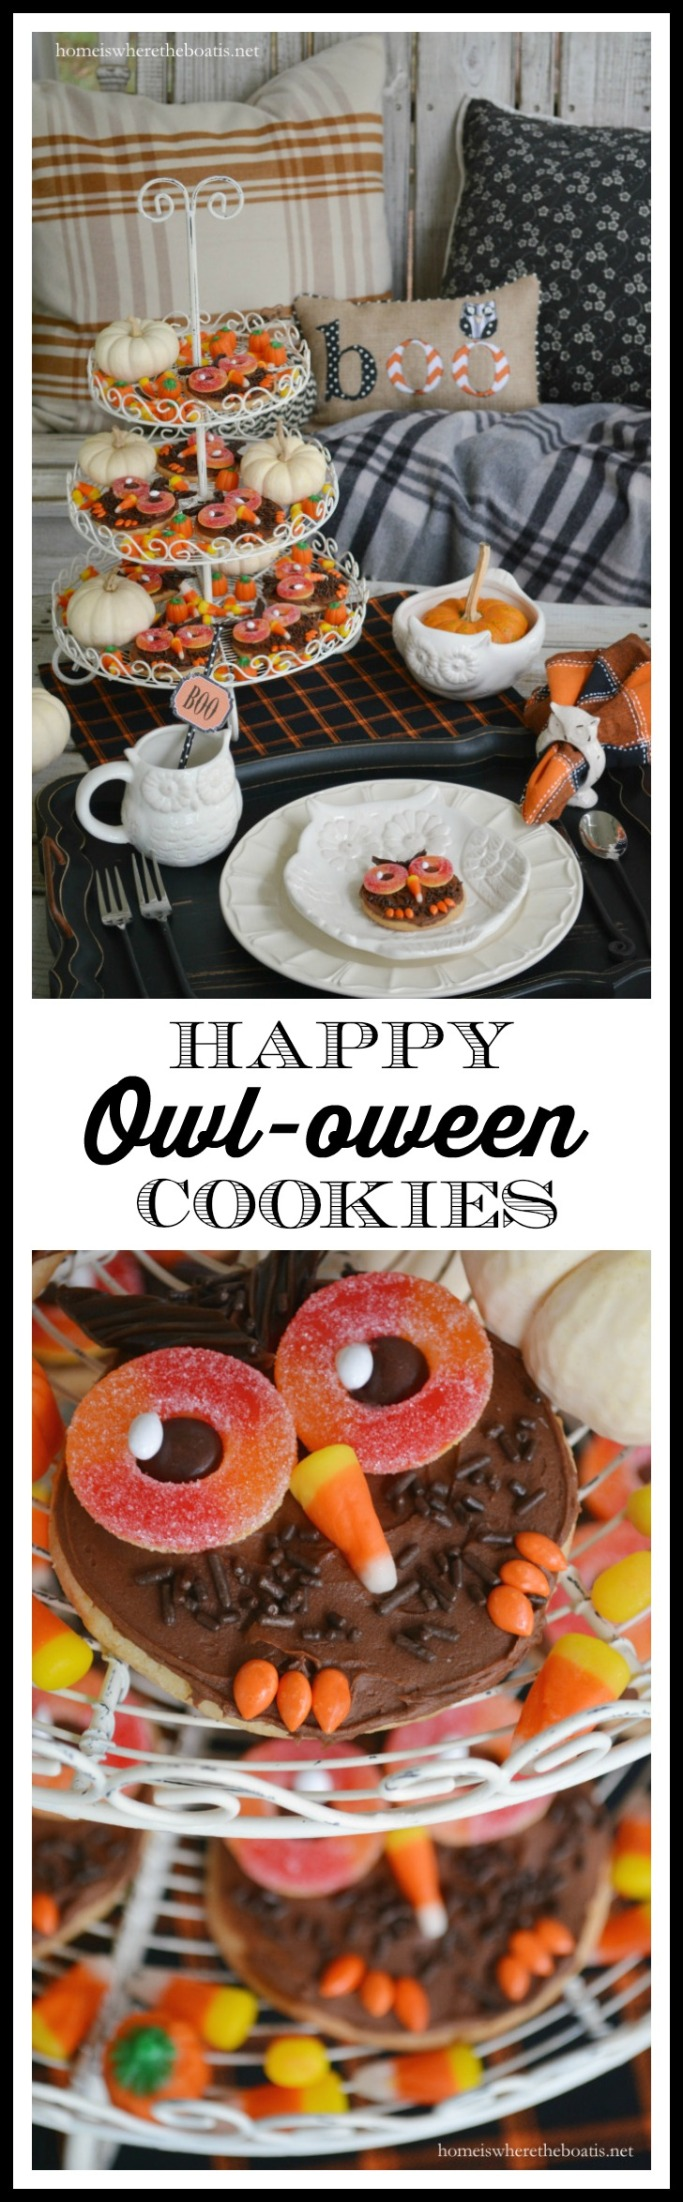 Happy Owl-oween Cookies